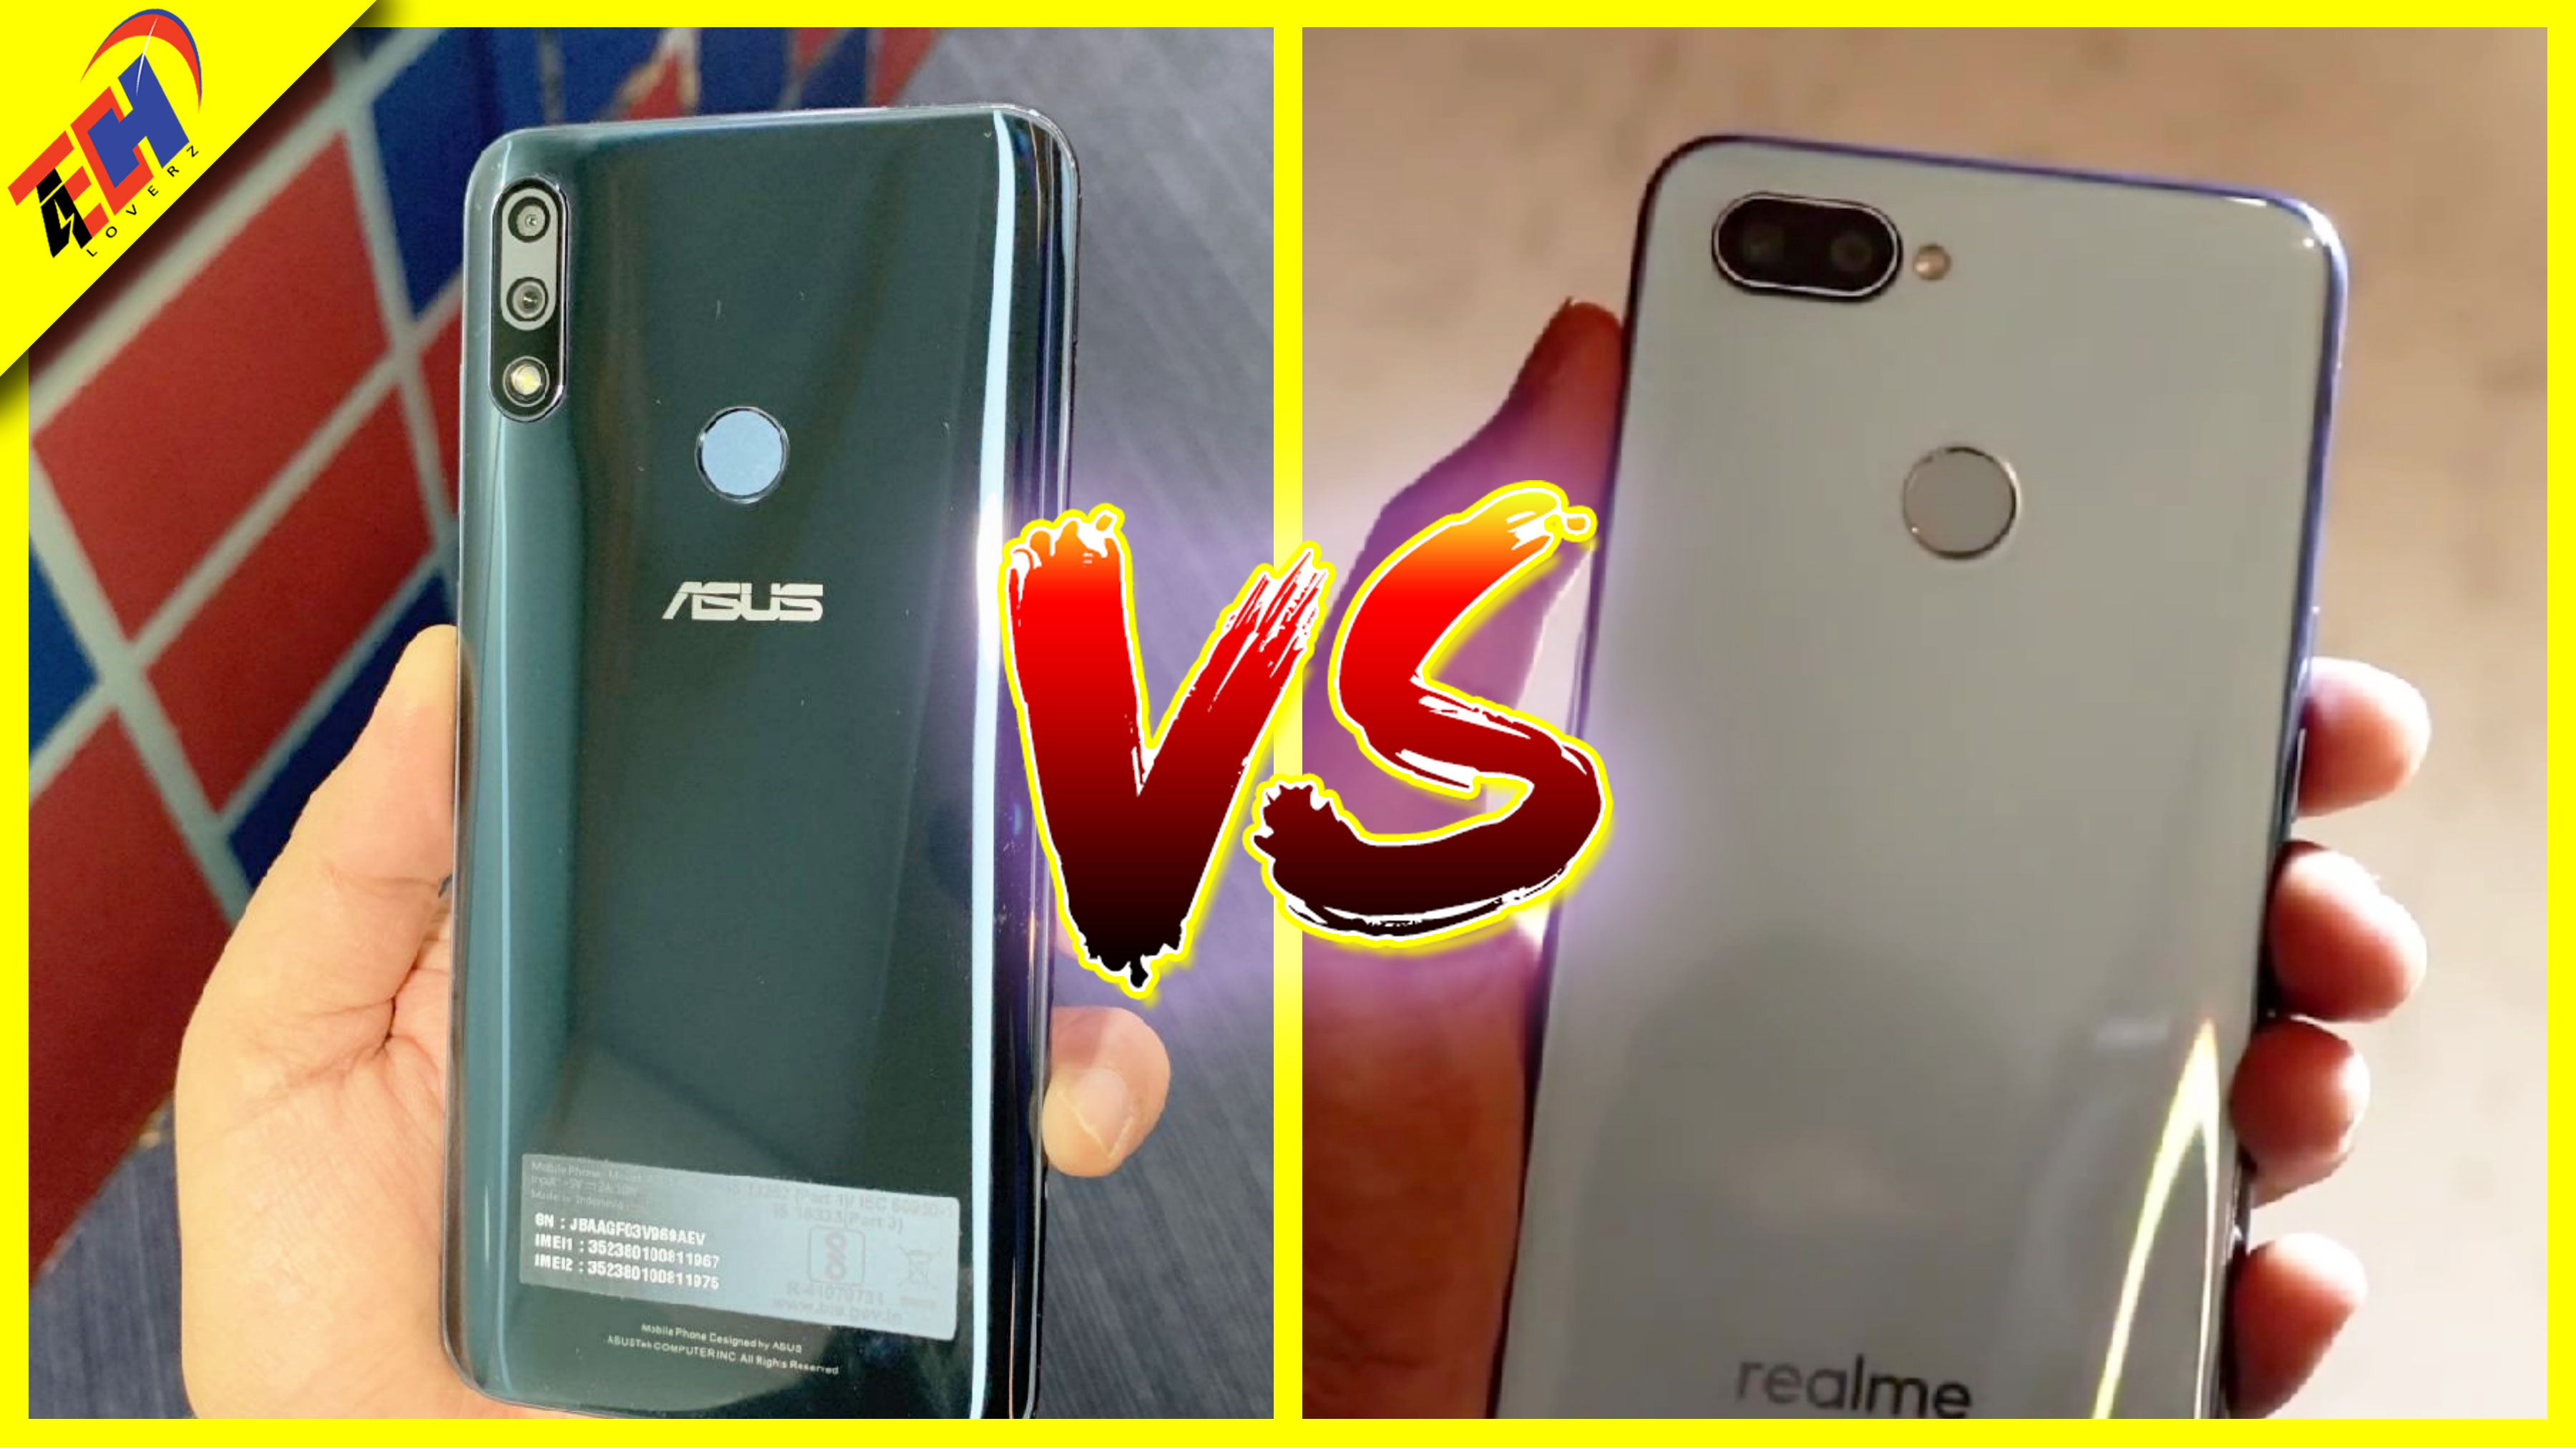 Asus Zenfone Max Pro M2 vs Realme 2 Pro – A Tough Comparison